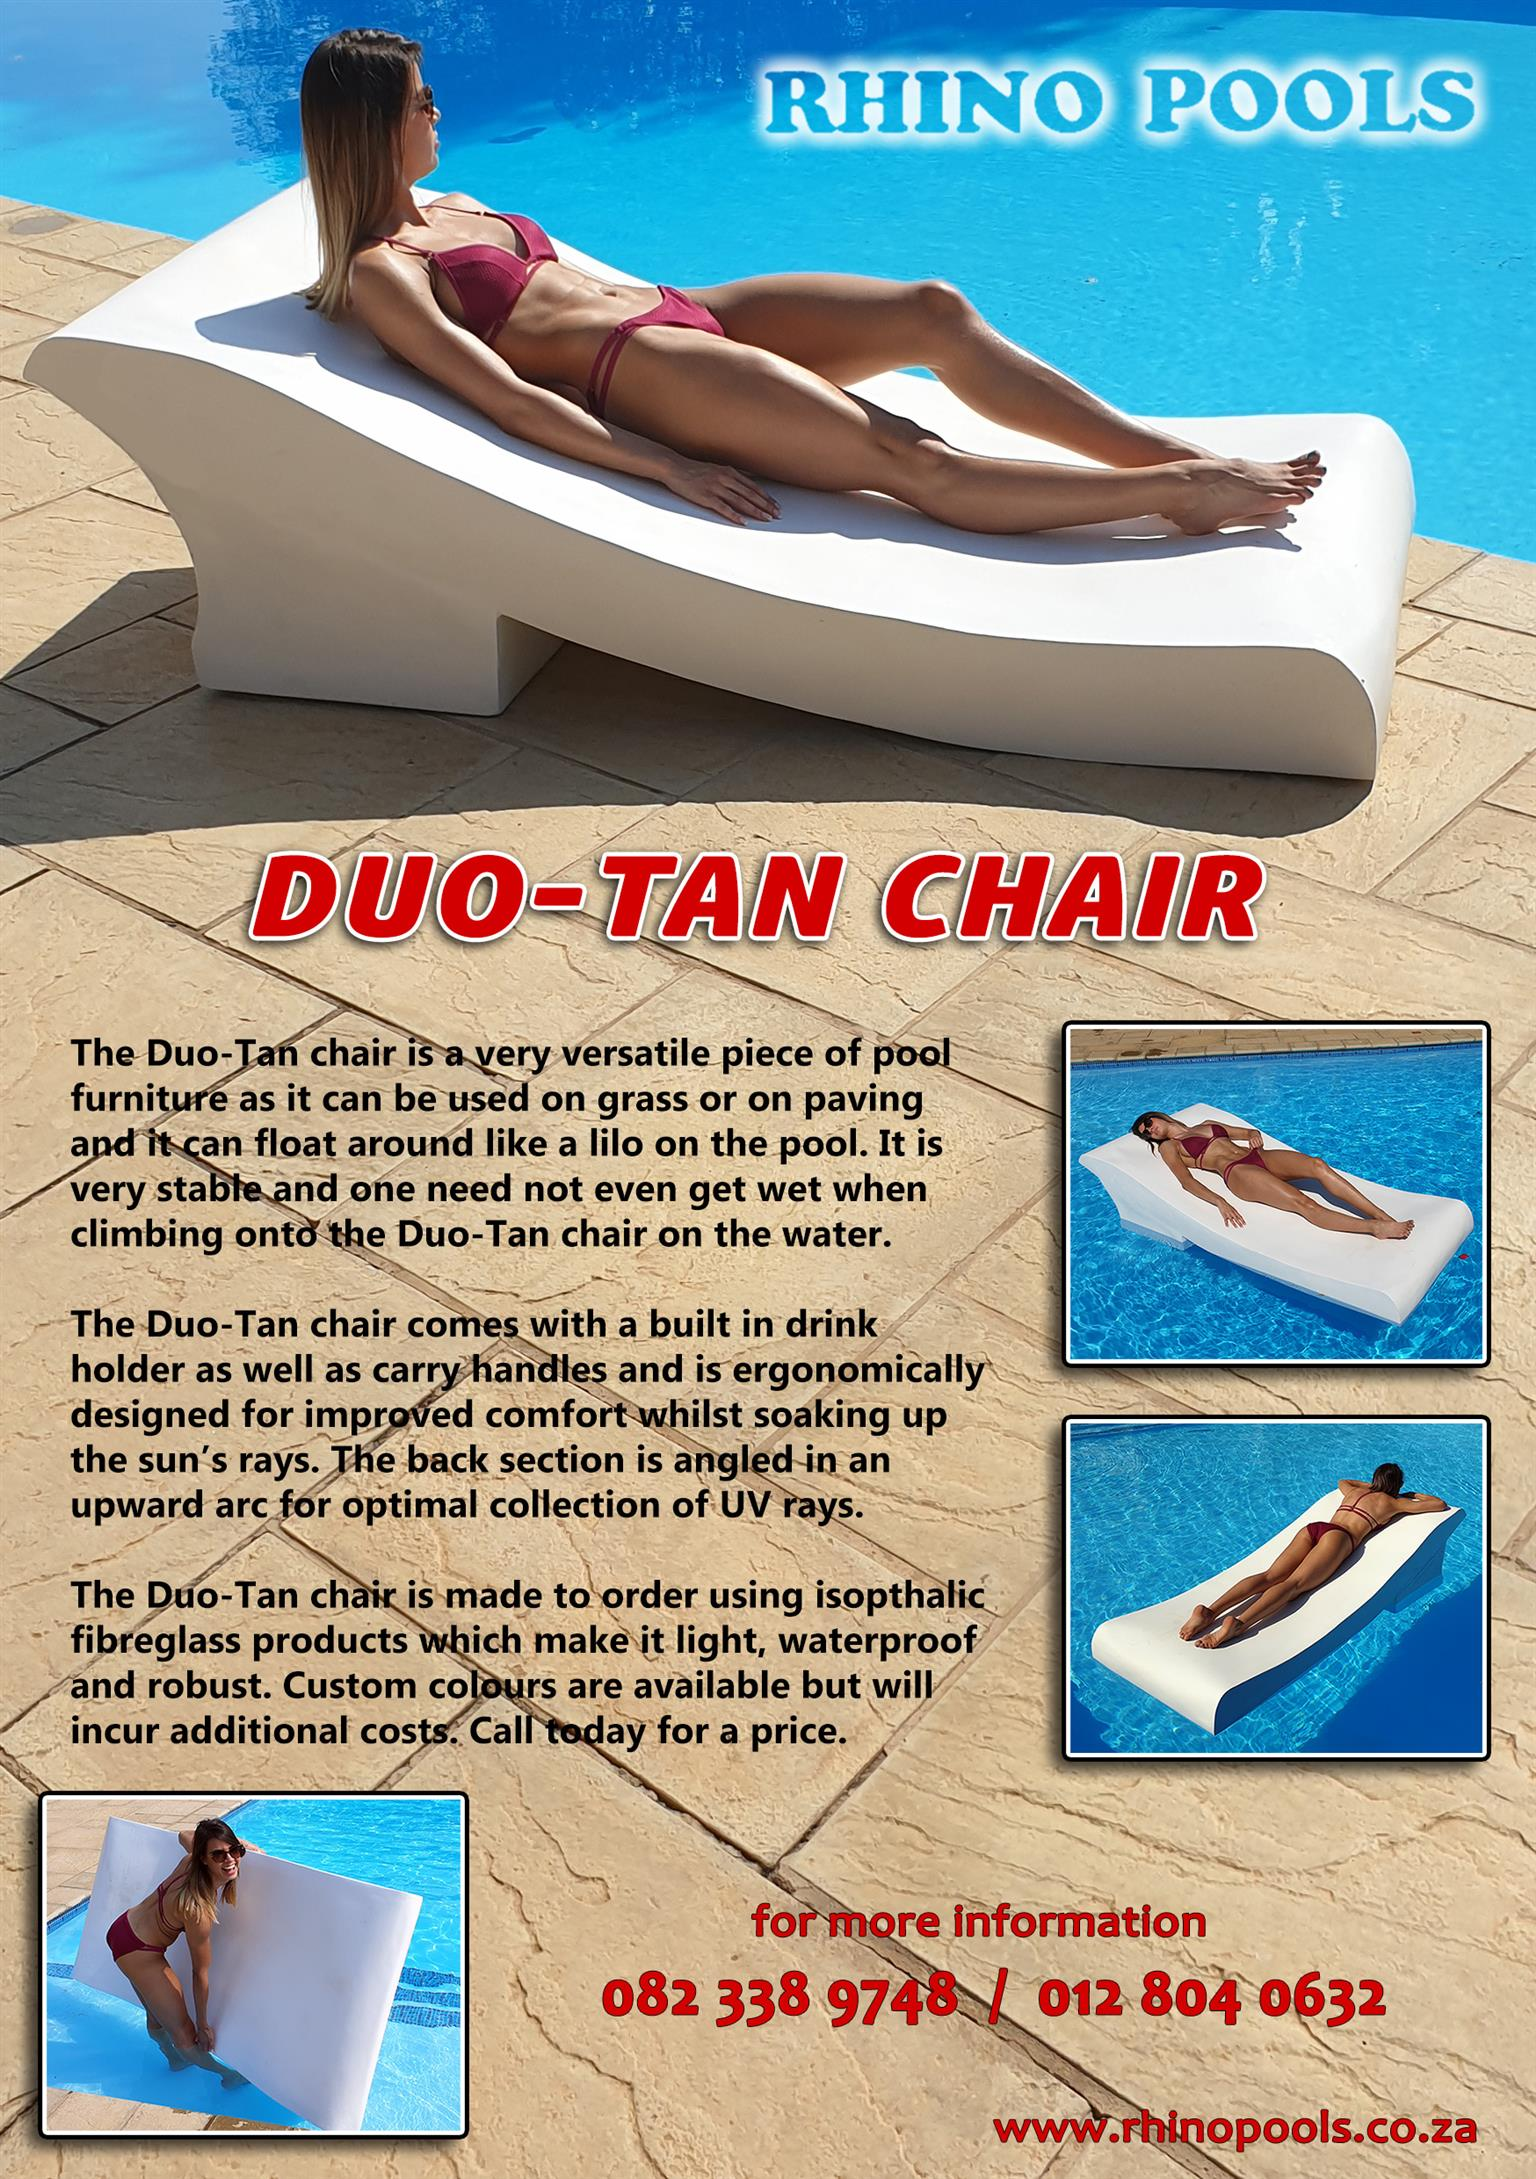 The Duo-Tan poolside/patio tanning chair